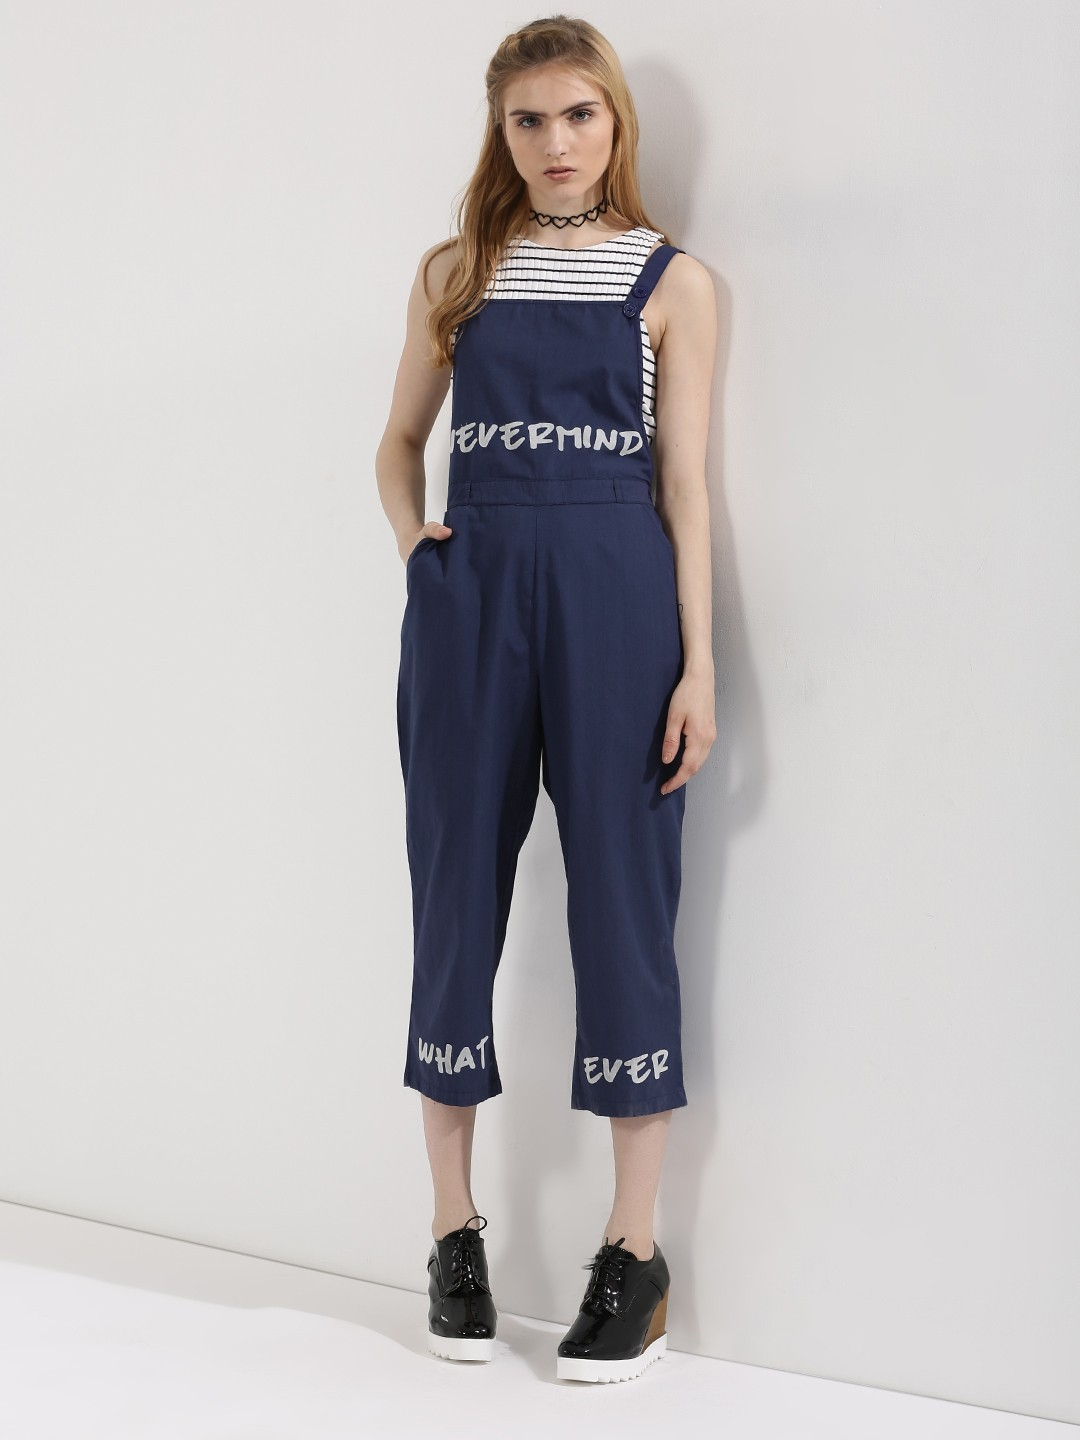 Jumpsuits for Women - Buy Jumpsuits Online in India